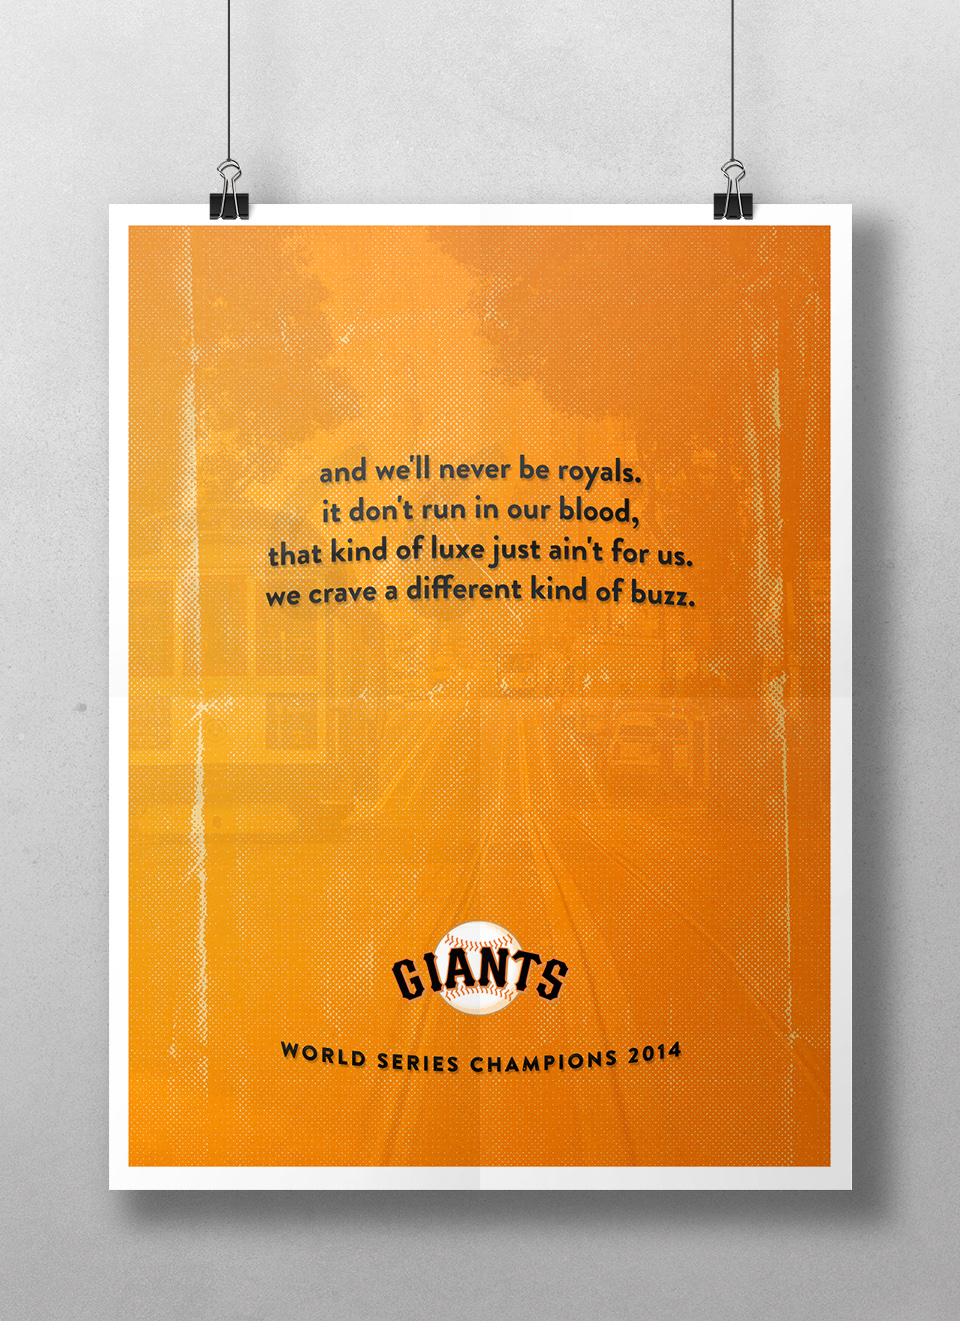 san francisco giants - world series champions 2014 poster